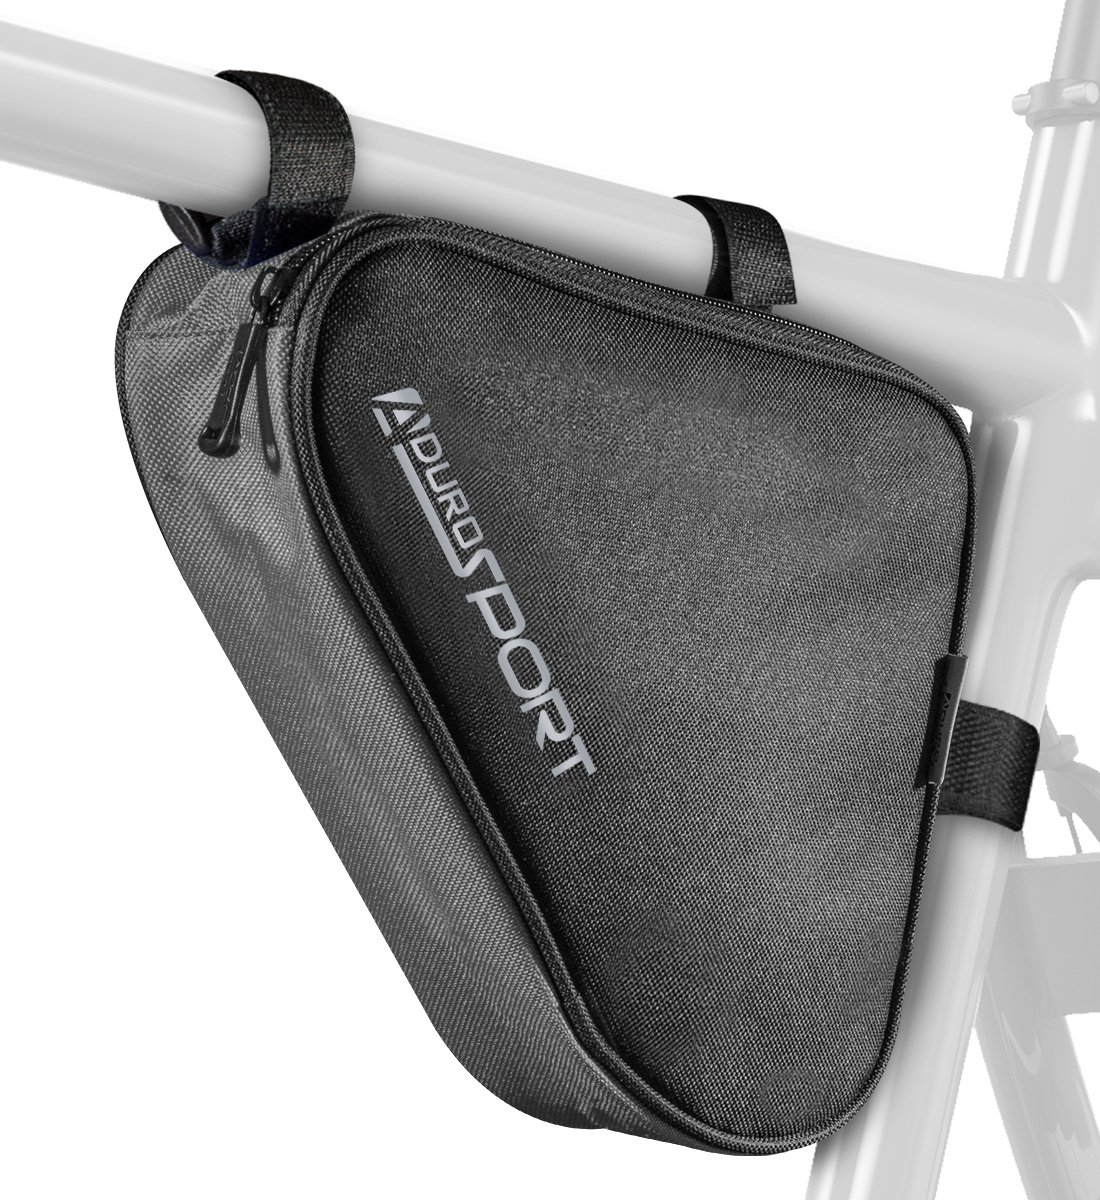 Pro Cycle Bicycle Triangle Storage Bag Black